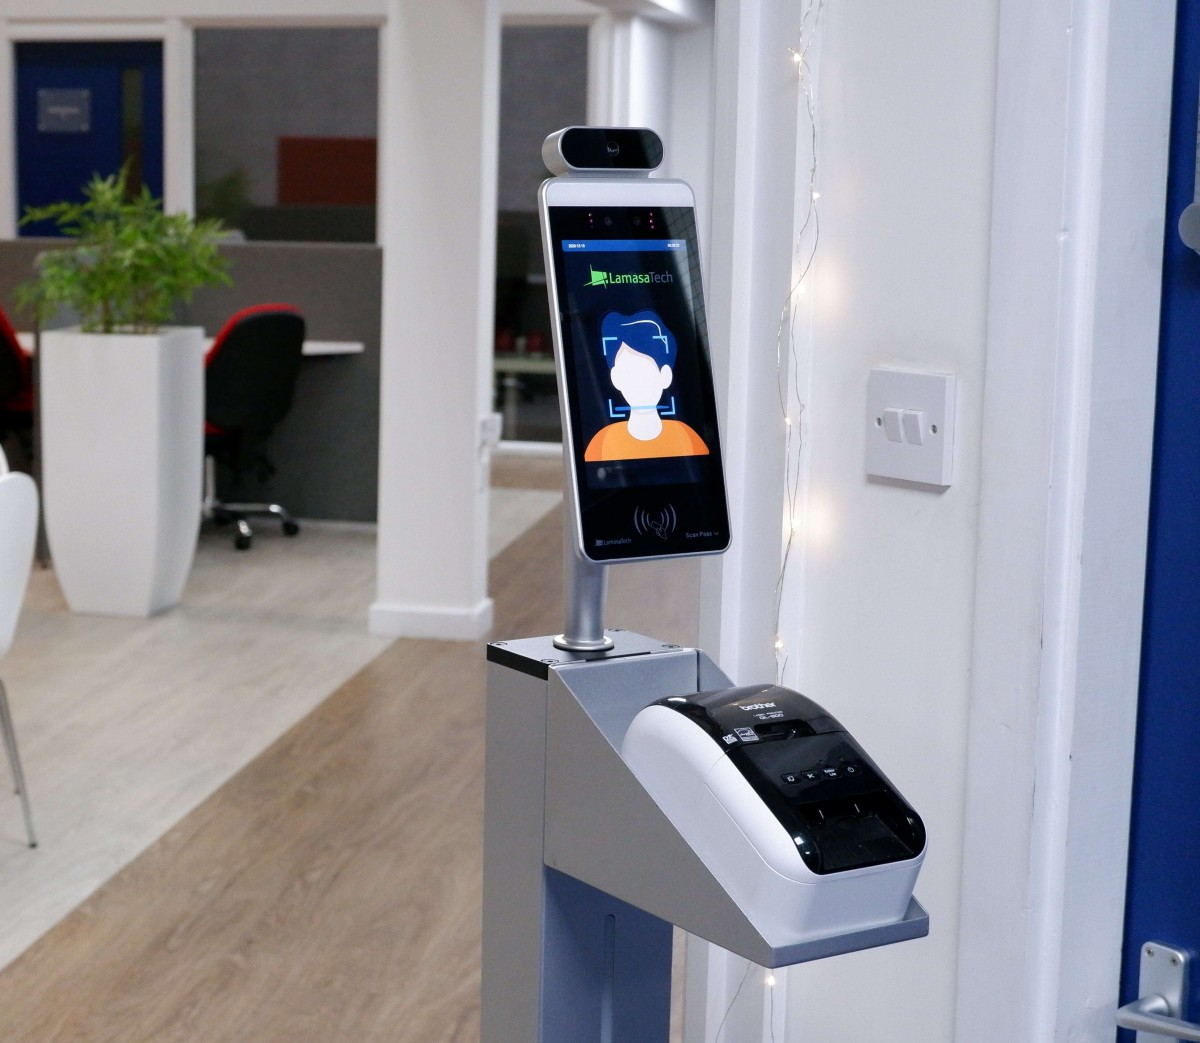 Modern Workplace Solutions for a Safe and Secure Environment